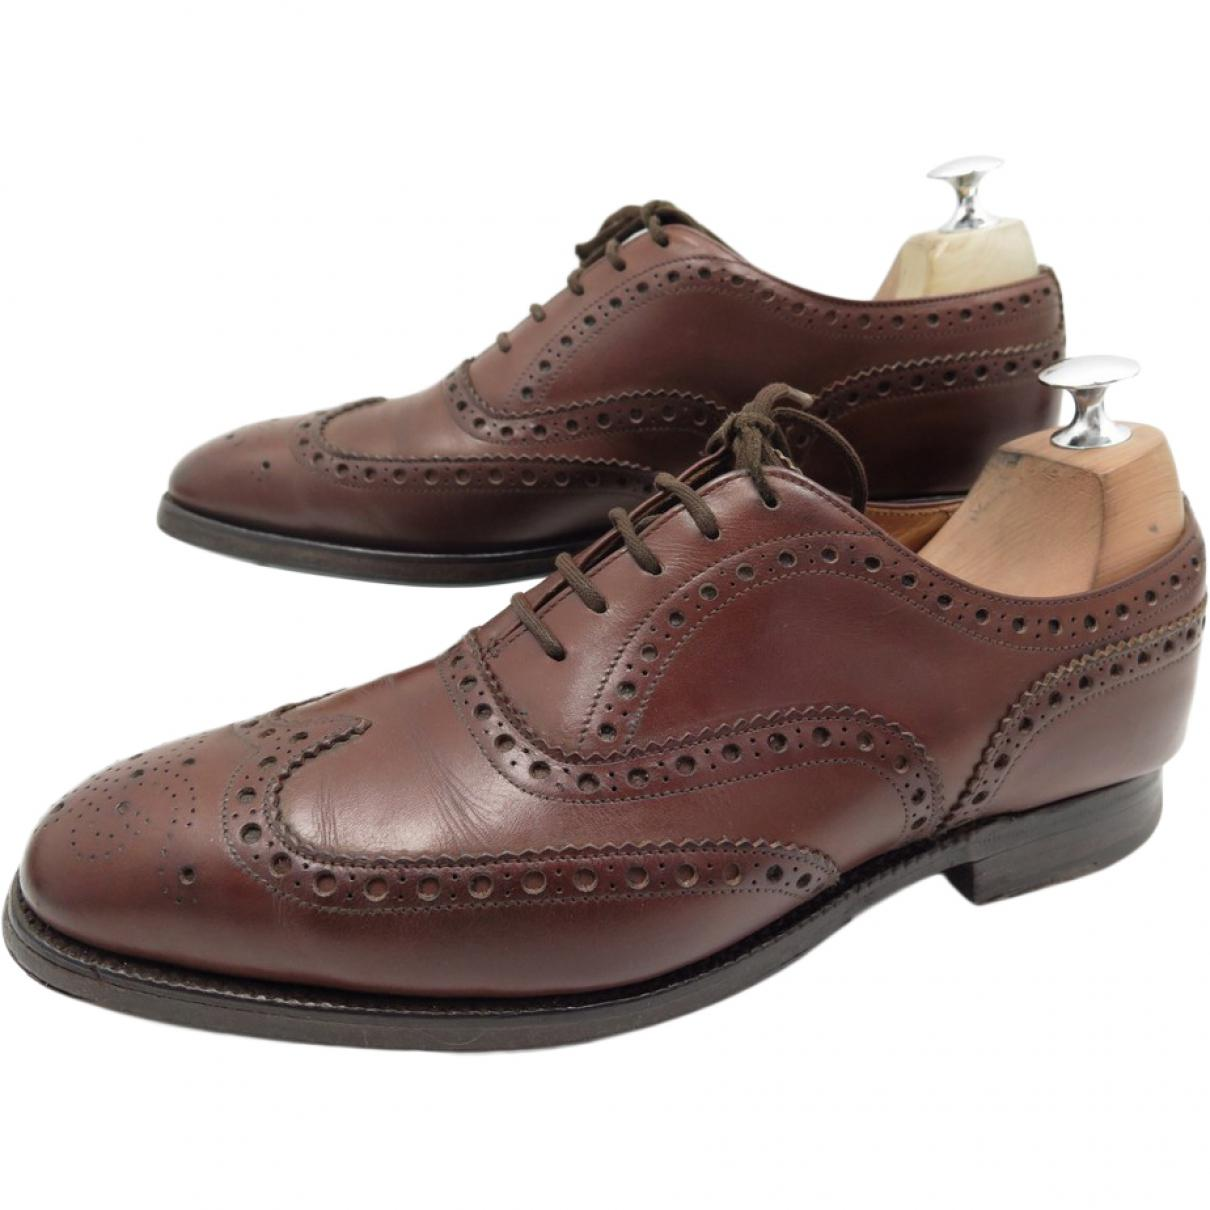 Pre-owned - Brown Leather Lace ups Churchs